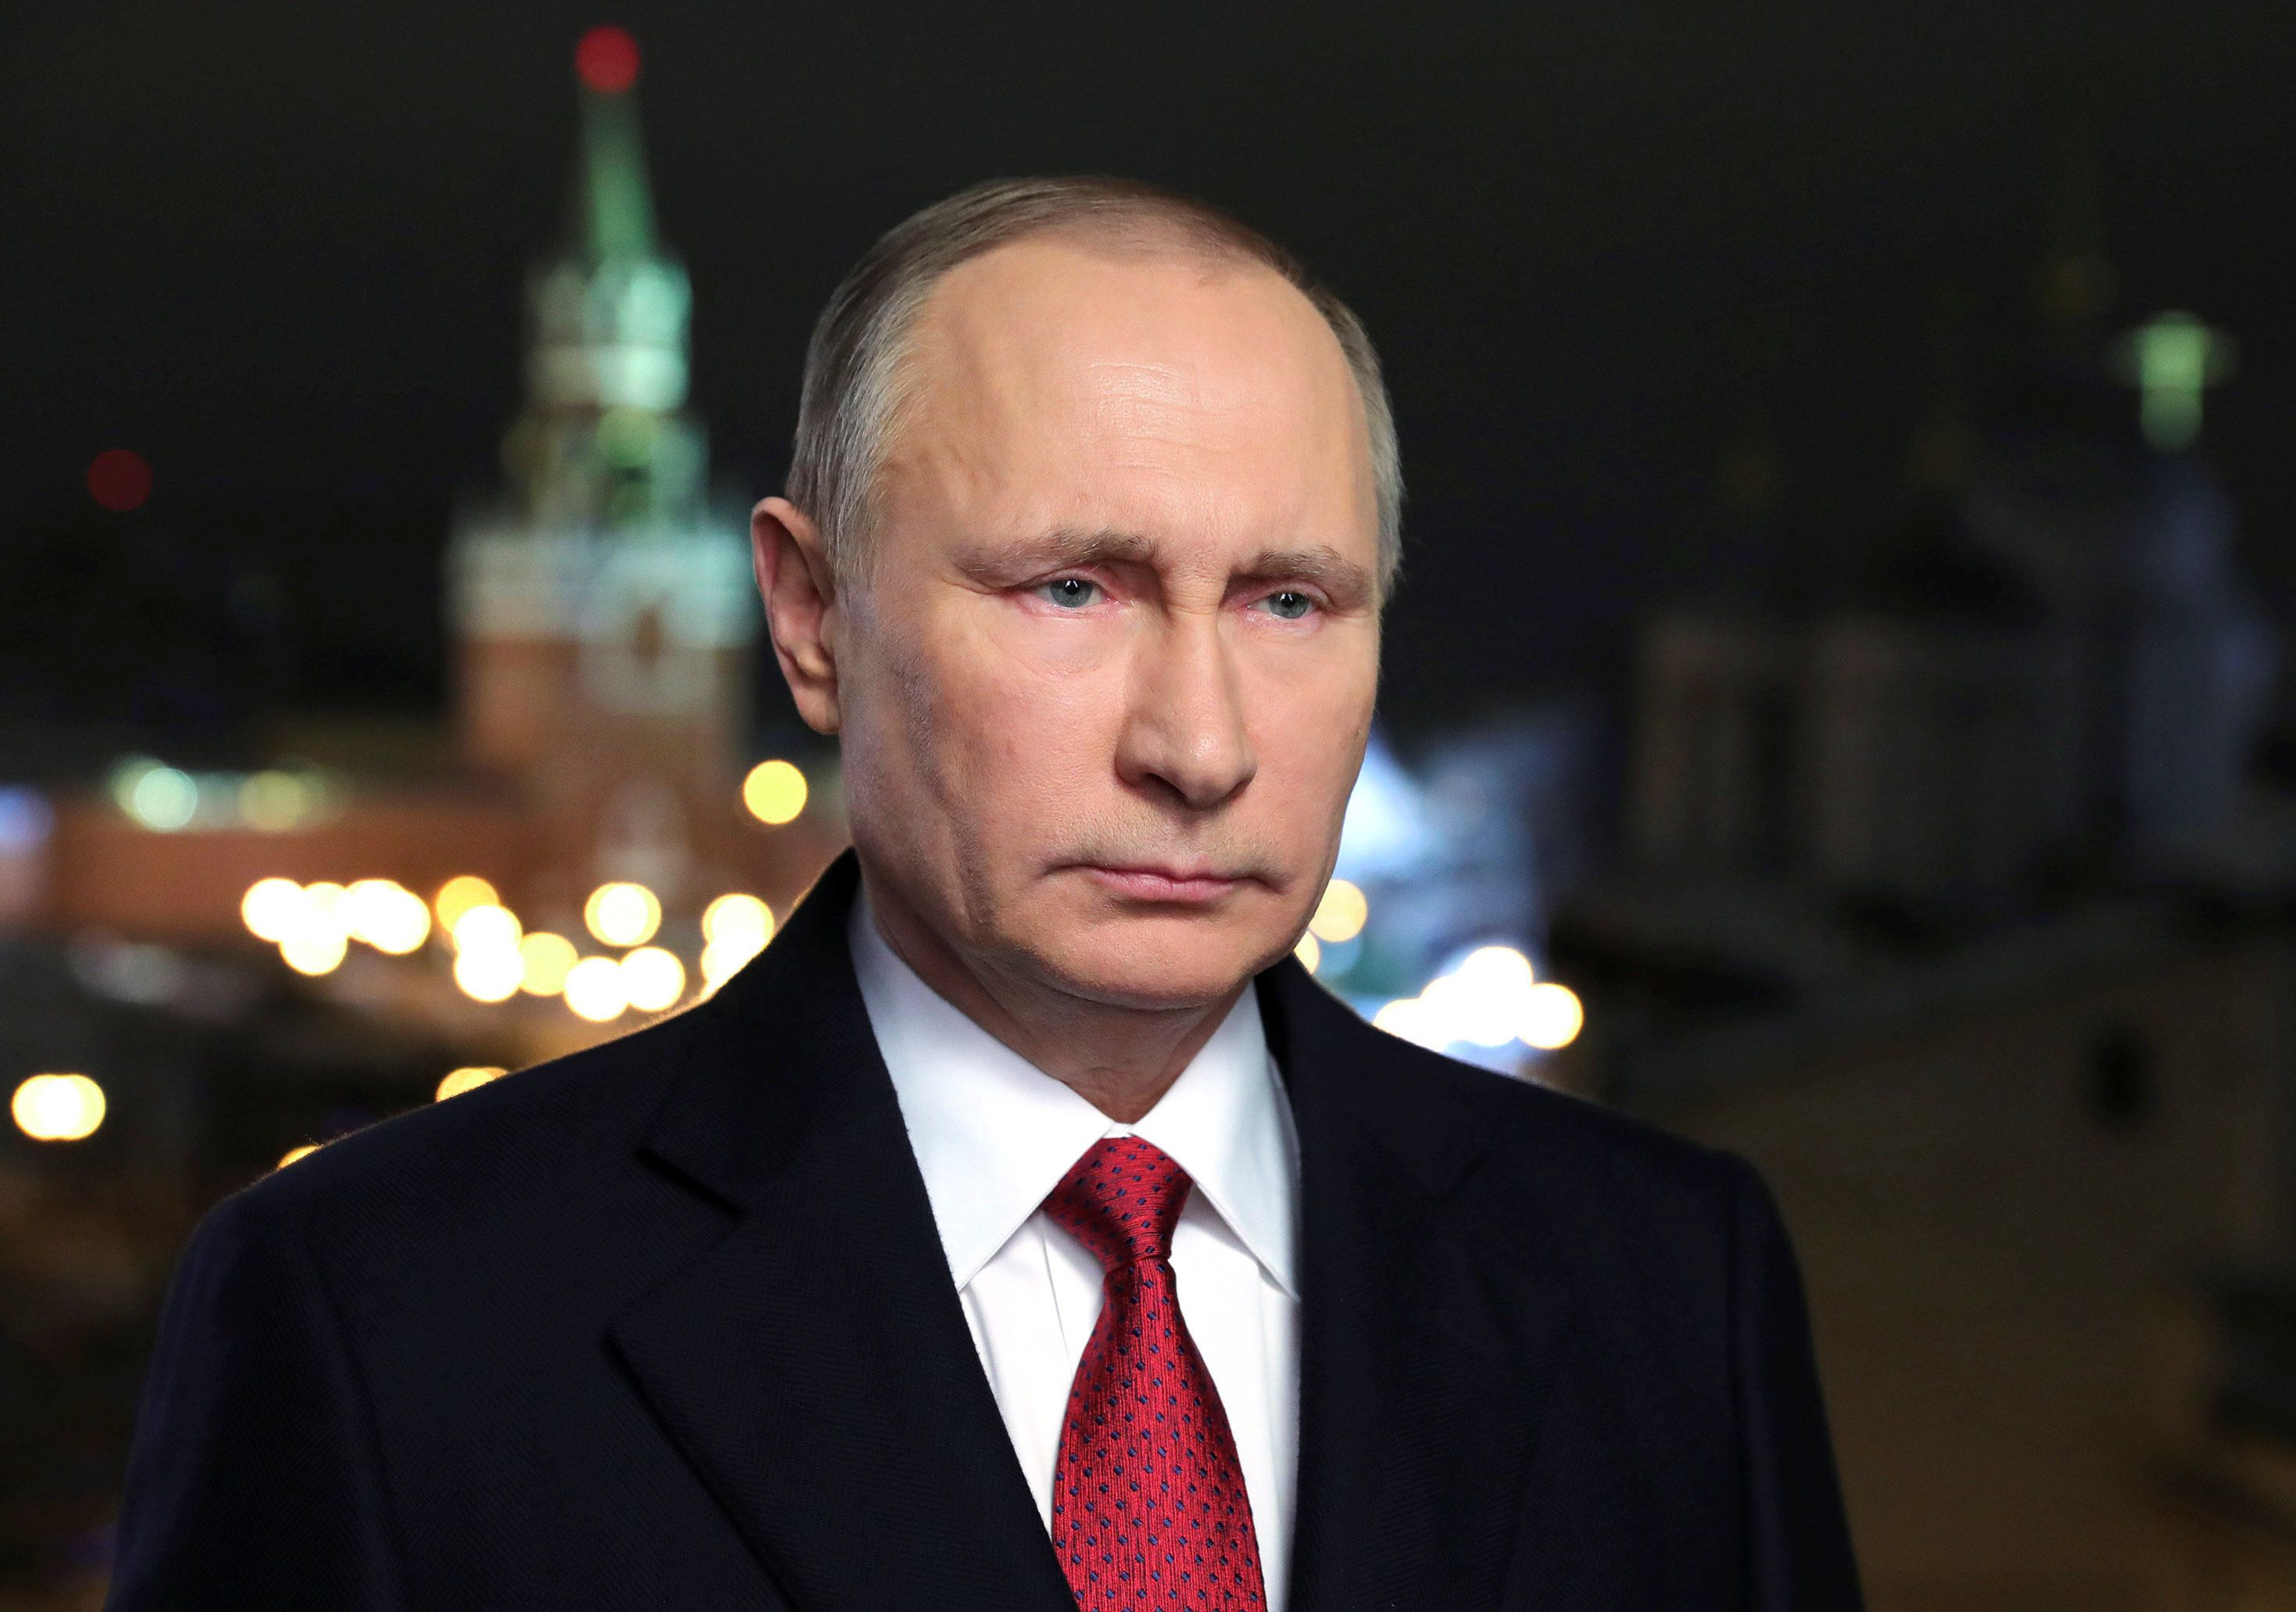 Russia's President Vladimir Putin makes his annual New Year address to the nation in Moscow, Russia, December 31, 2016. Sputnik/Mikhail Klimentyev/Kremlin via REUTERS ATTENTION EDITORS - THIS IMAGE WAS PROVIDED BY A THIRD PARTY. EDITORIAL USE ONLY.